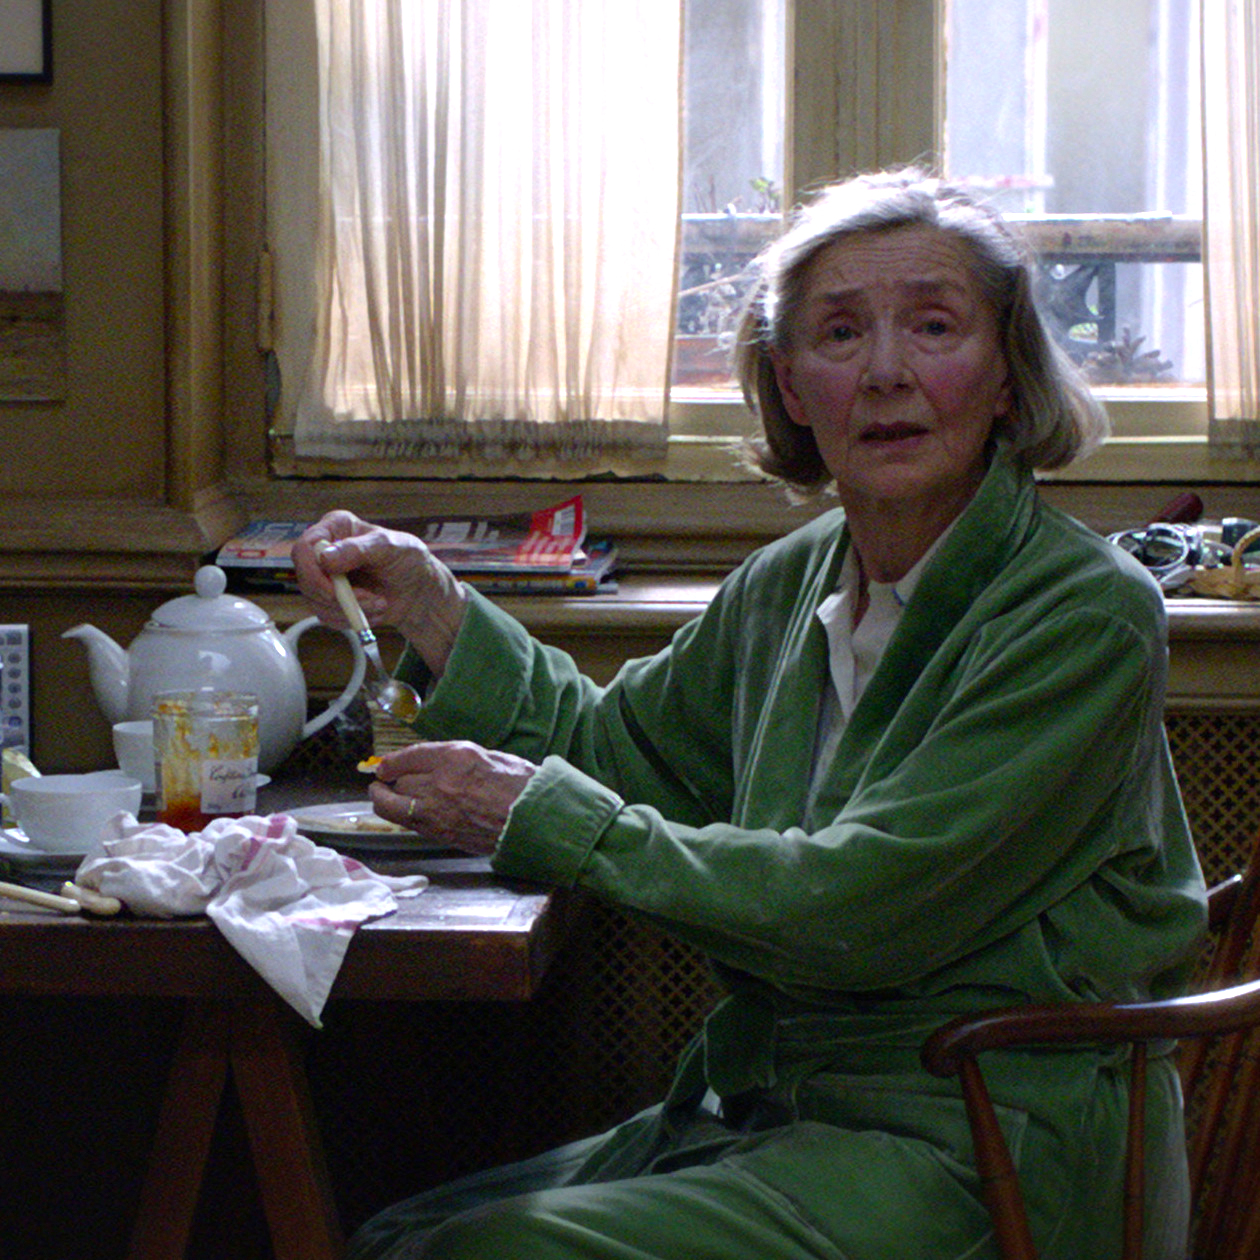 Emmanuelle Riva is the oldest woman to be nominated for the Best Actress Oscar. Her role in the successful, award-winning Amour shows how an older audience is changing the face of cinema.